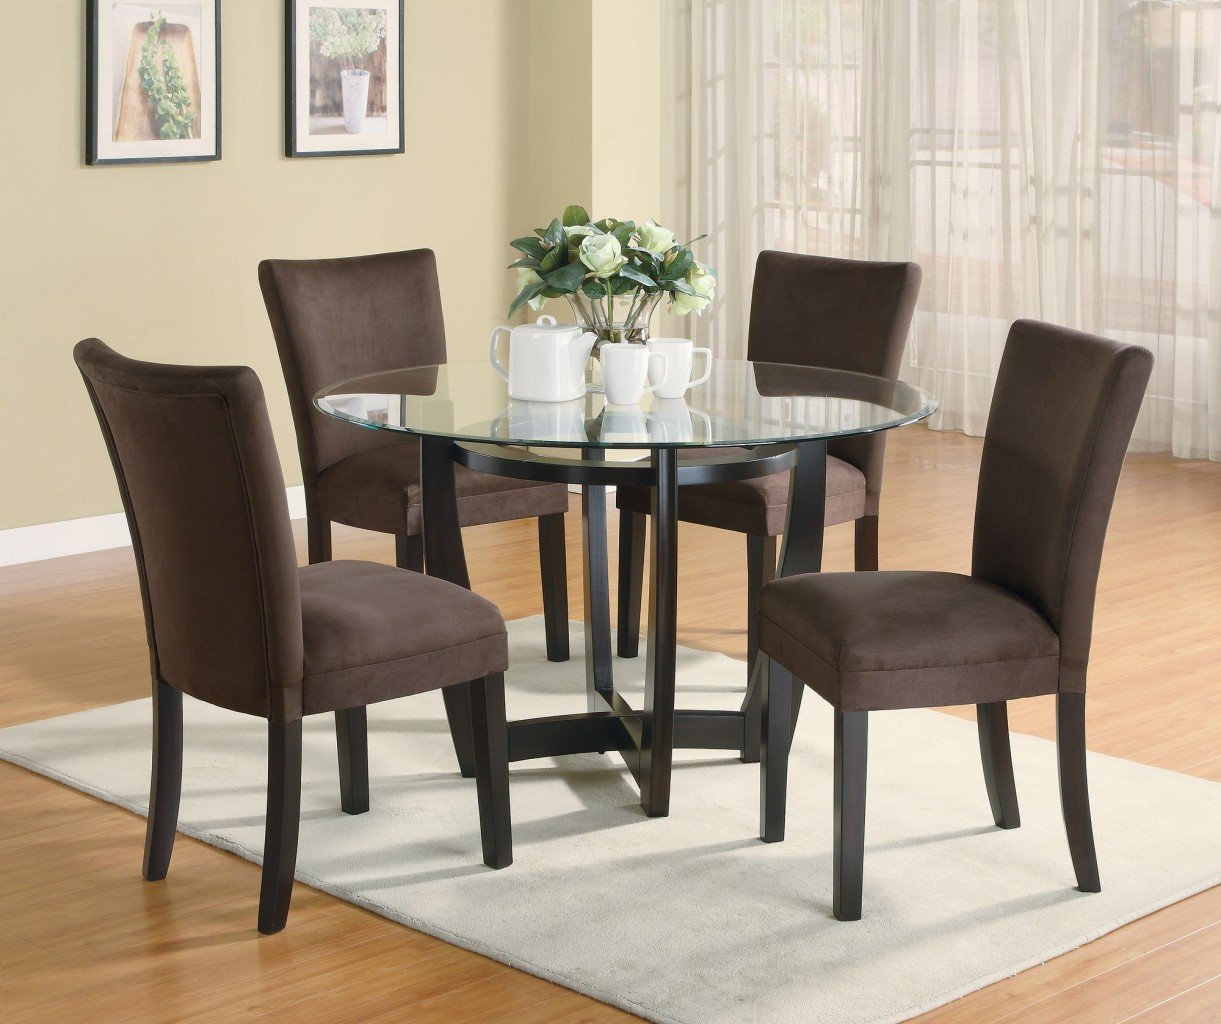 Cheap dining room table sets home furniture design for Breakfast sets furniture